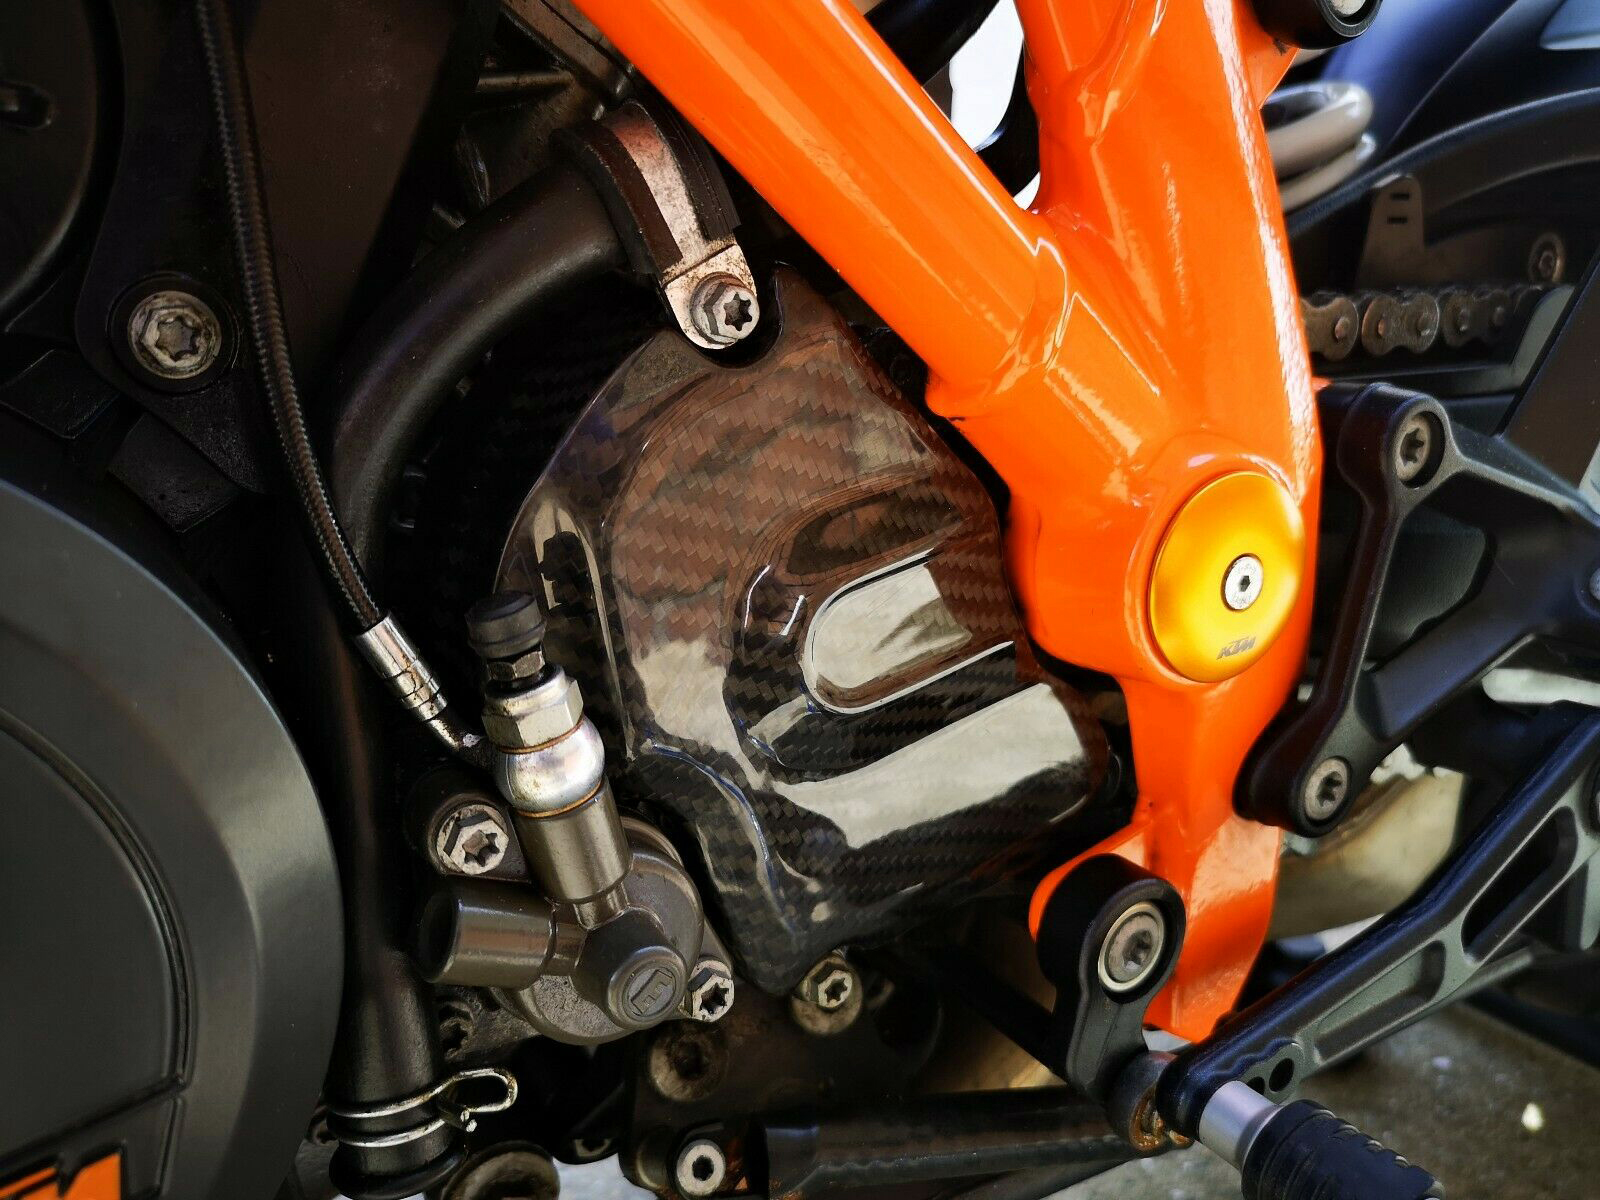 ktm-superduke-carbon-fibre-sprocket-cover.jpg